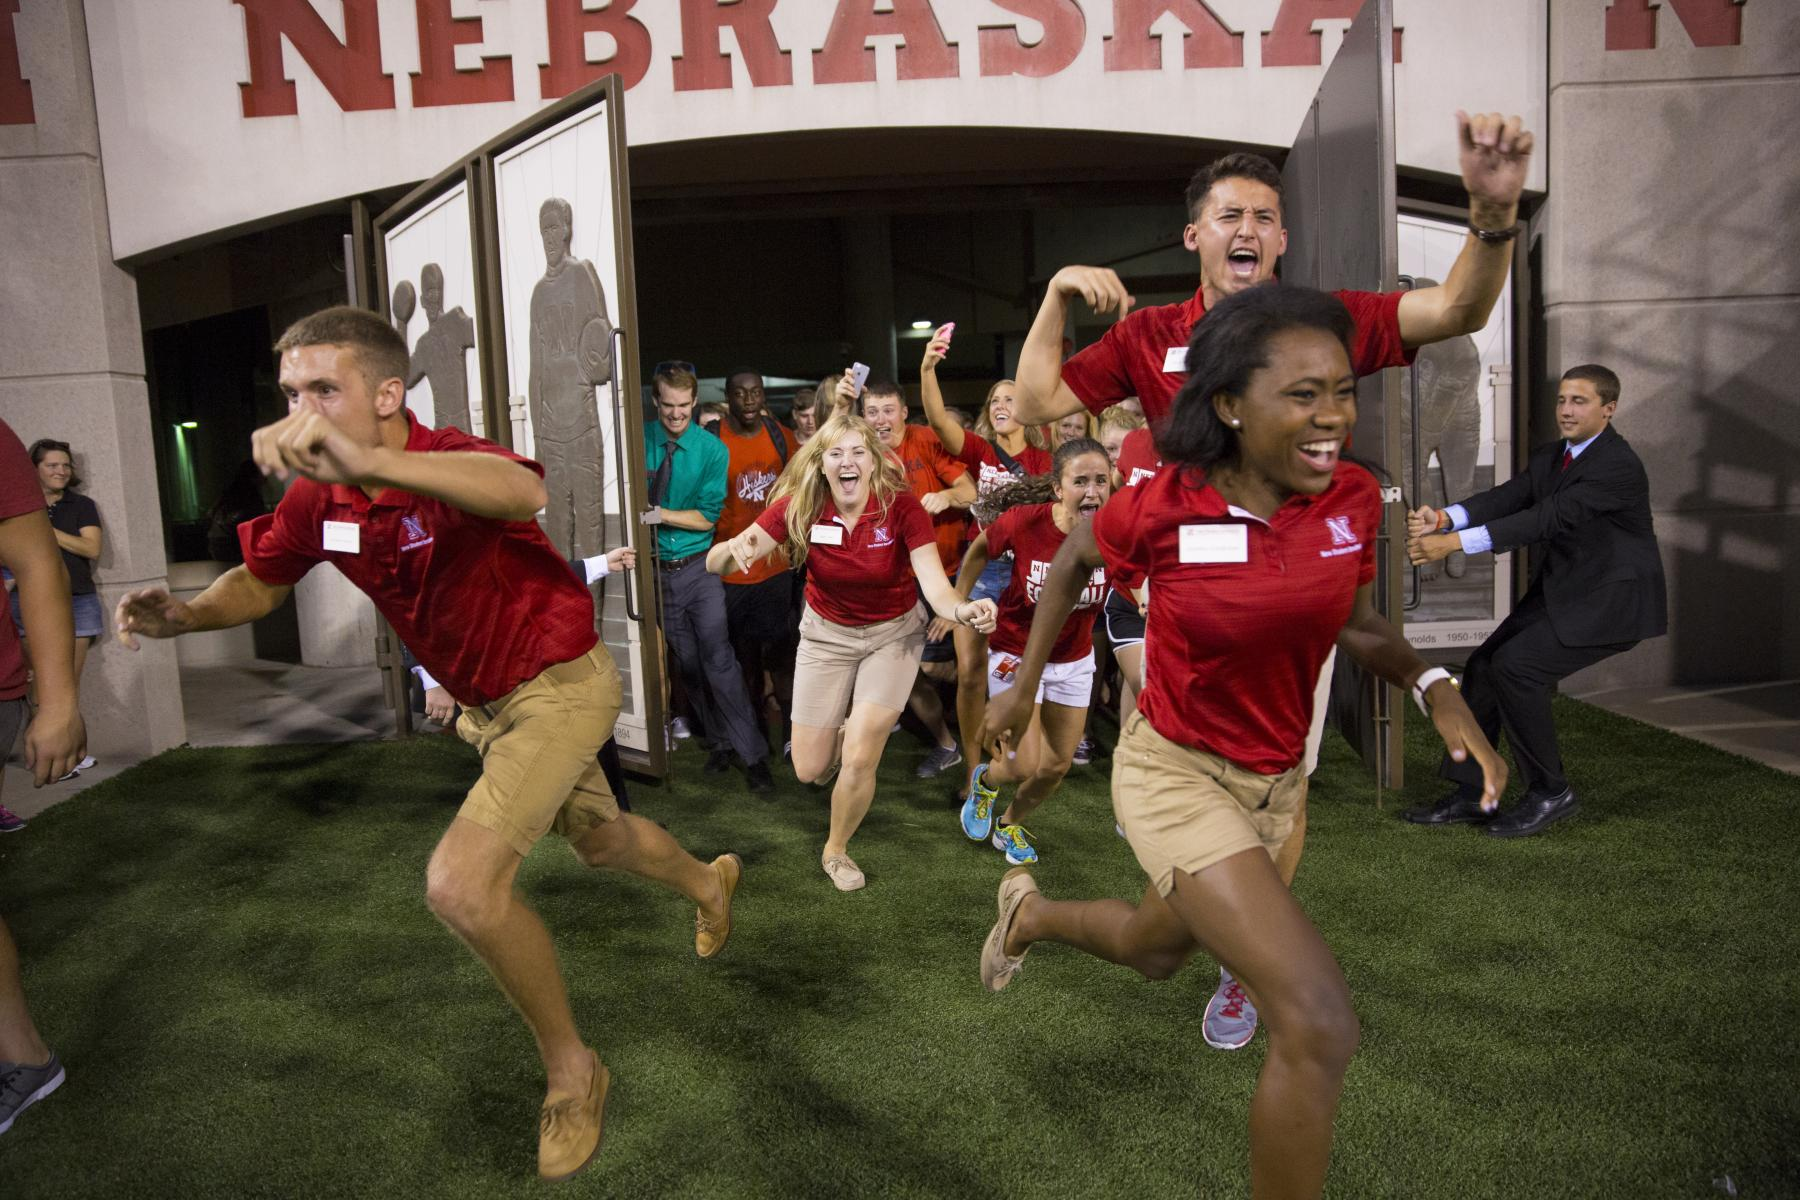 Lincoln Ne Events Unl Big Red Welcome University Of Nebraska Lincoln